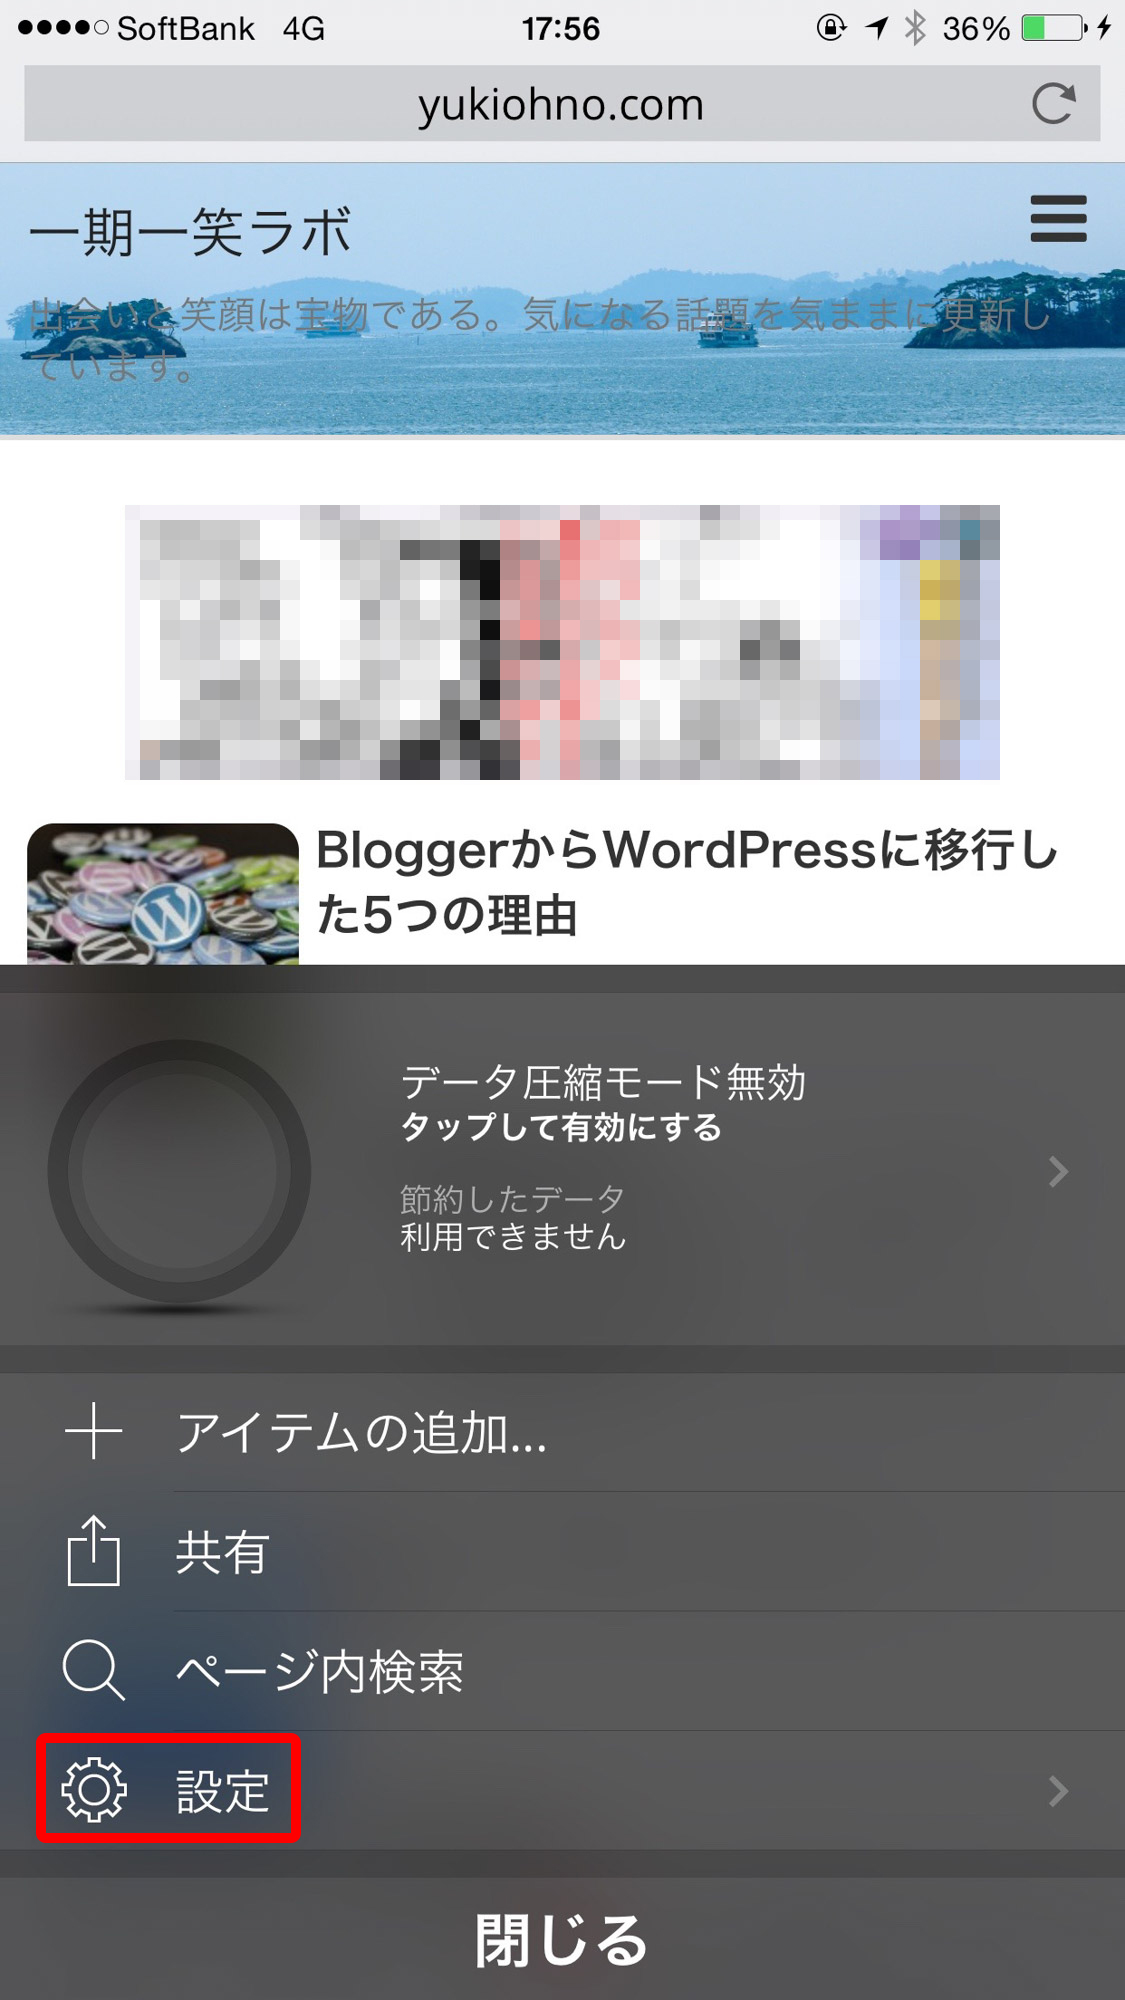 browser-wp-4259